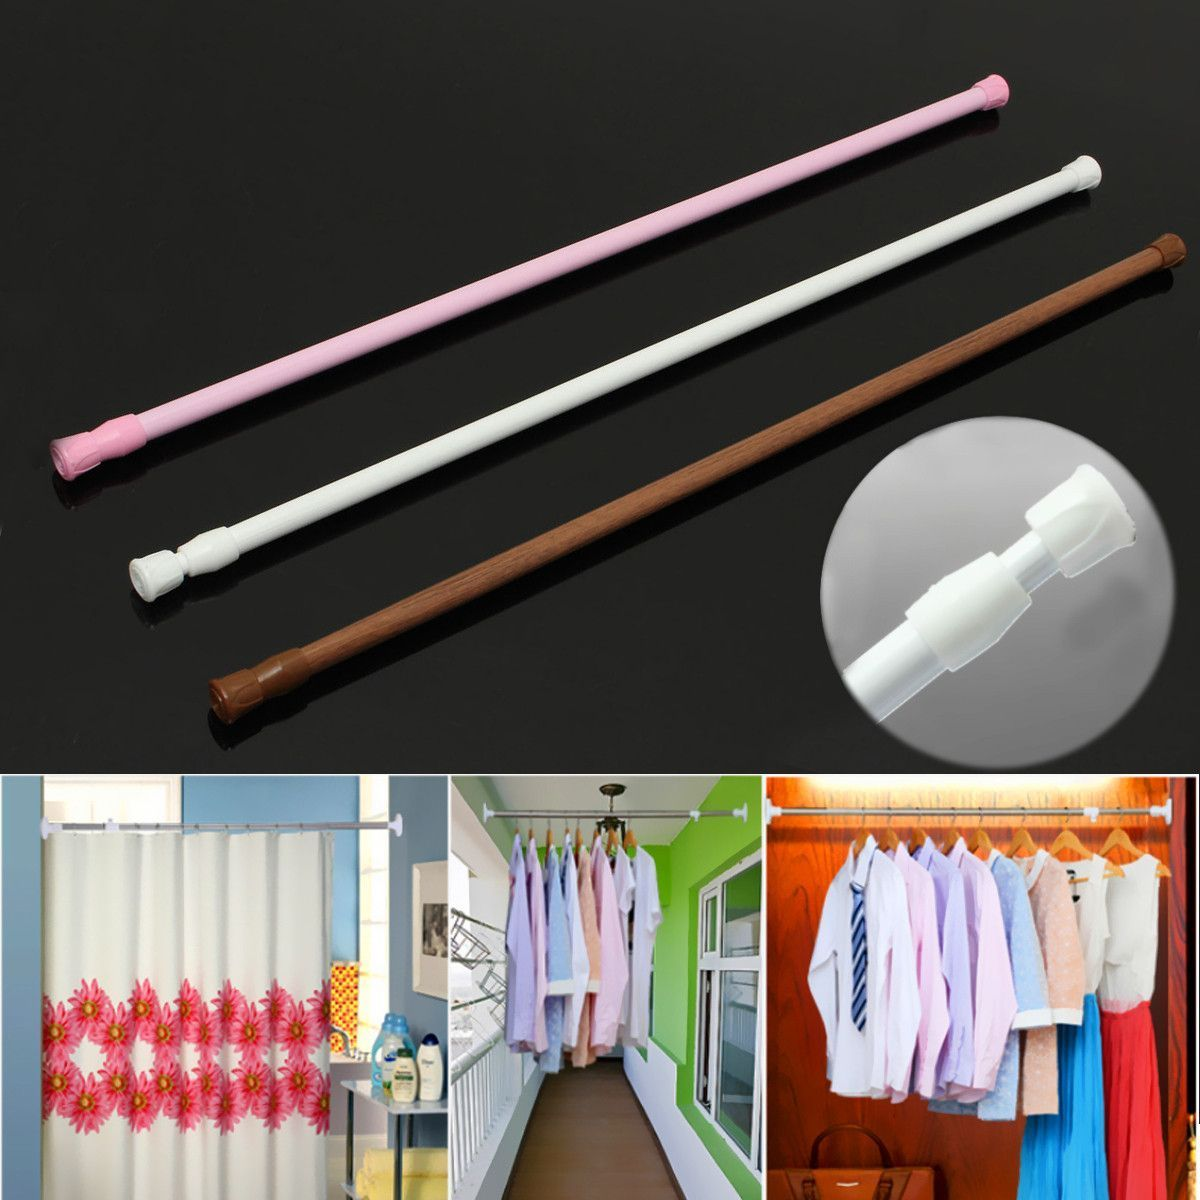 60 110cm Extendable Adjustable Spring Tension Curtain Rod Pole